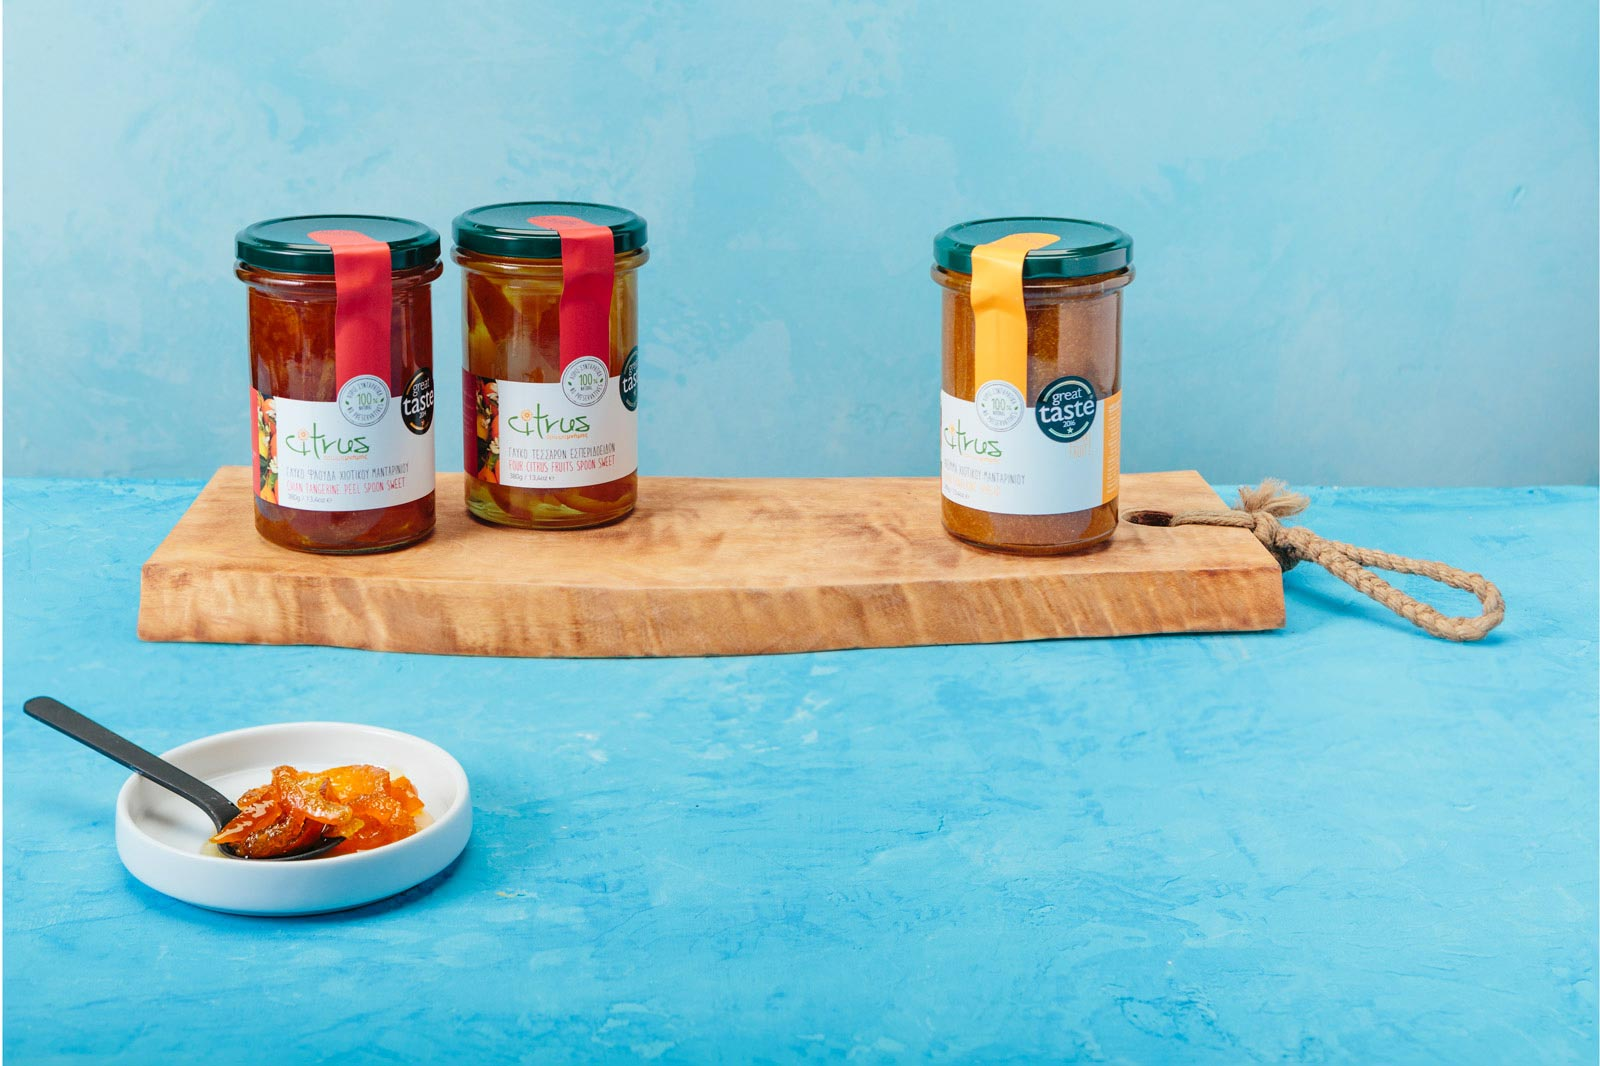 Citrus Handmade Marmalades and Fruit Preserves